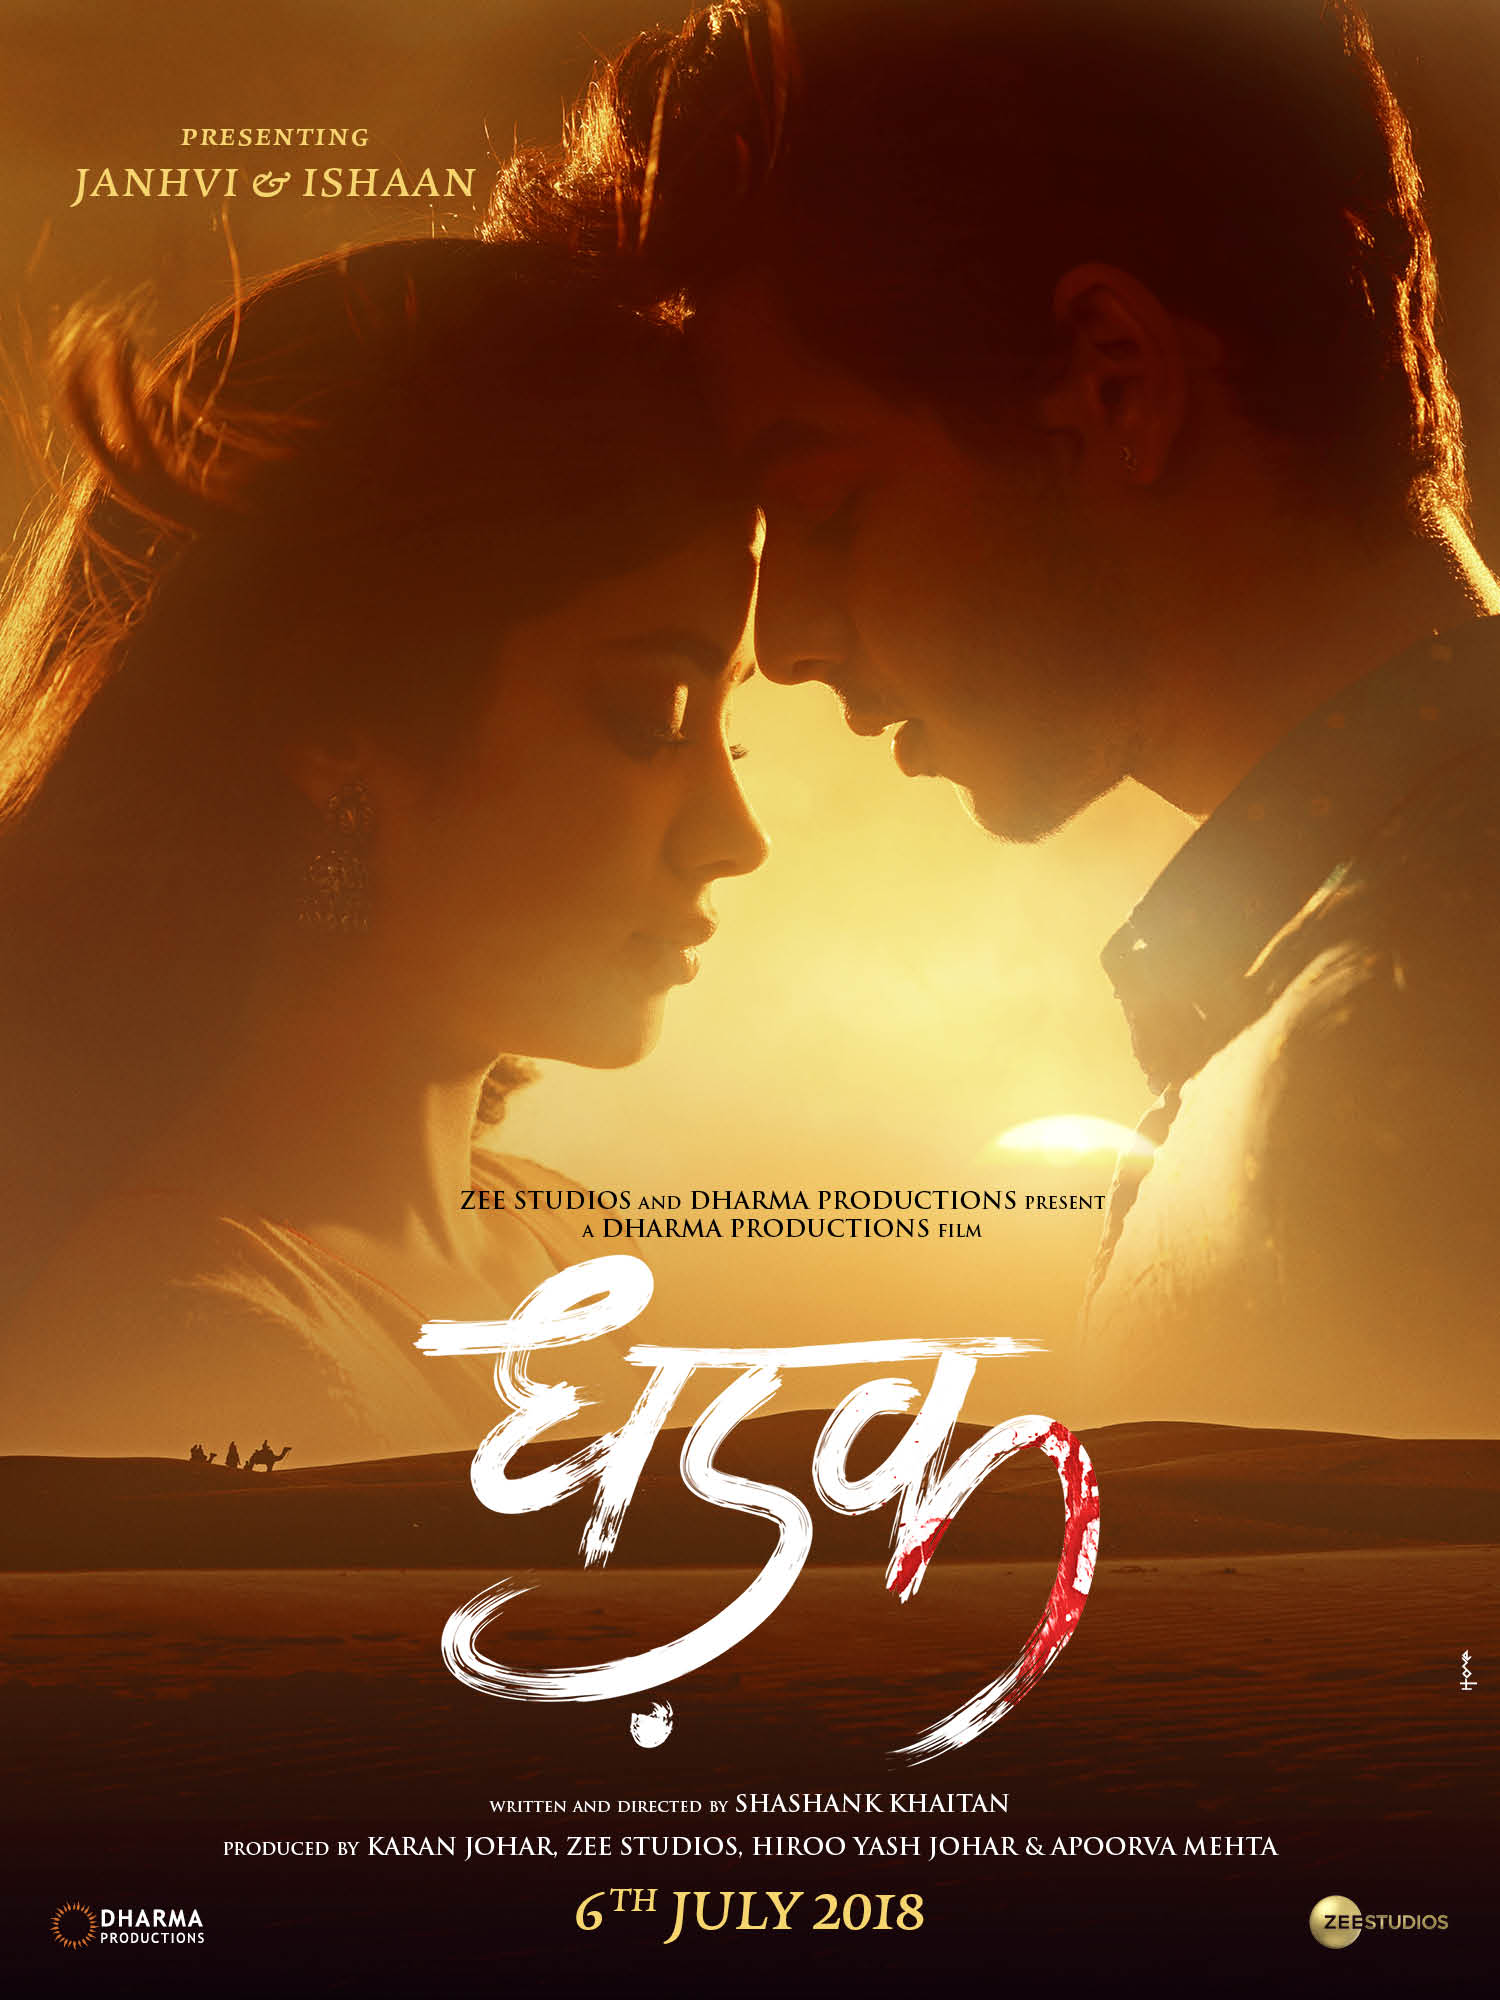 Sridevi's daughter and Shahid Kapoor's brother set to debut in Dhadak  Veteran actress Sridevi's daughter Janhvi Kapoor and Shahid Kapoor's brother Ishaan Khatter's Bollywood debut, Dhadak, has revealed its release date on July 6, 2018. The film is an official adaptation of critically and commercially successful Marathi film Sairat.   Karan Johar shared three posters of the movie yesterday revealing the first look of the two newcomers. While Ishaan looked like the next chocolate boy of Bollywood, Janhvi in her de-glam look made the wait for the movie even more exciting. Also, the sizzling chemistry between the duo looked promising.  Directed by Shashank Khaitan, the film is internationally distributed by Zee Studios International.